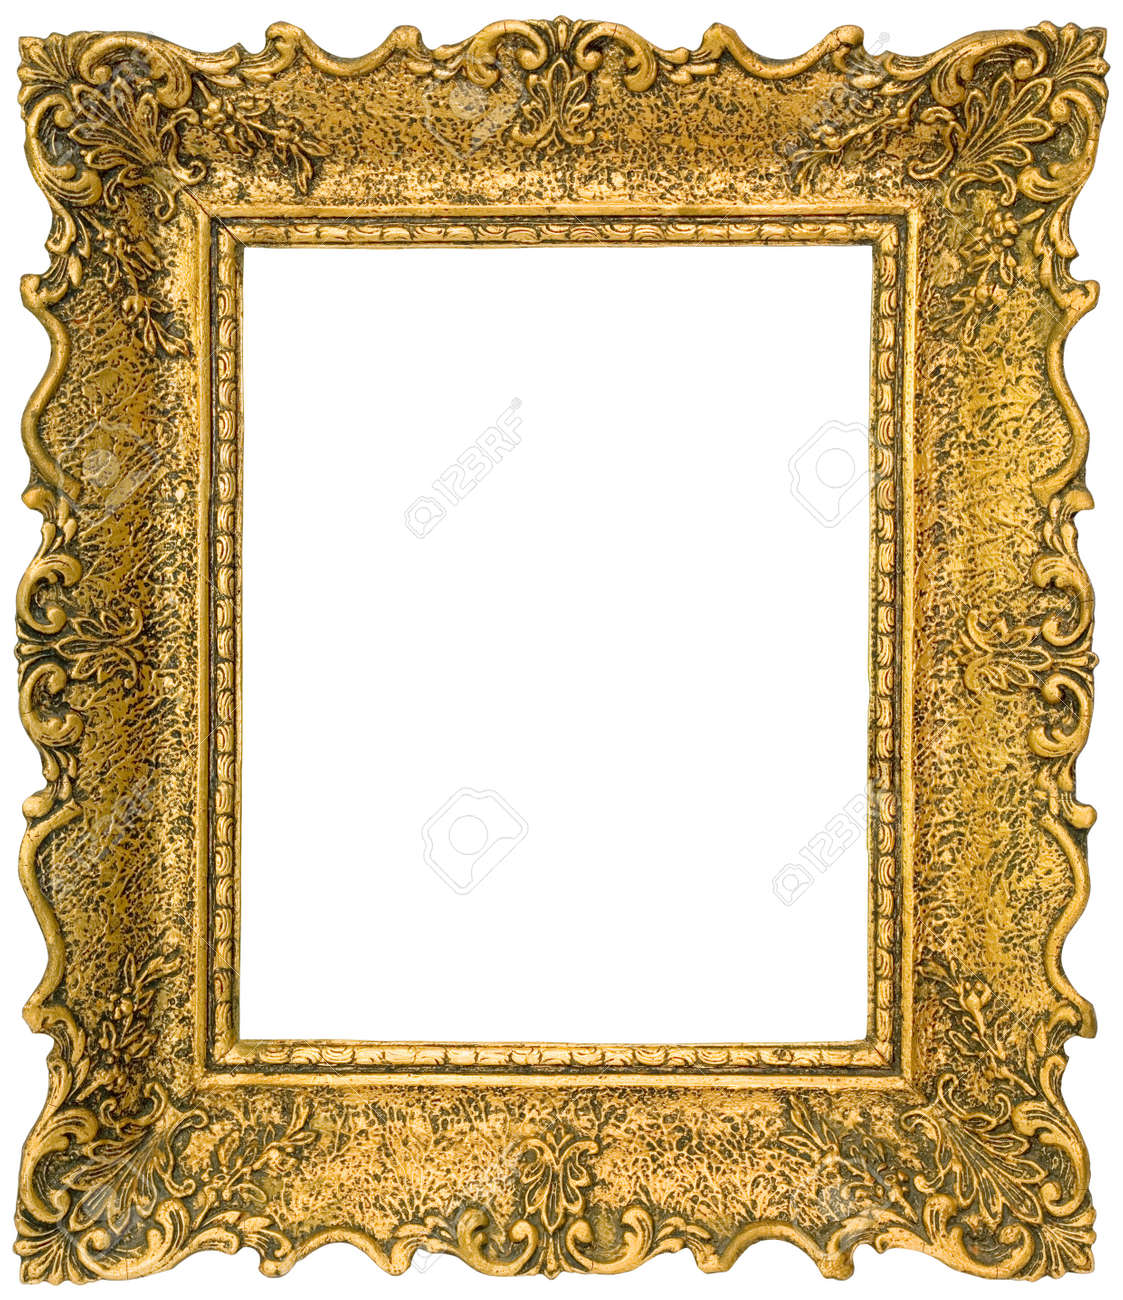 Unique Old Gilded Golden Wooden Frame Isolated Stock Photo, Picture And  TV48